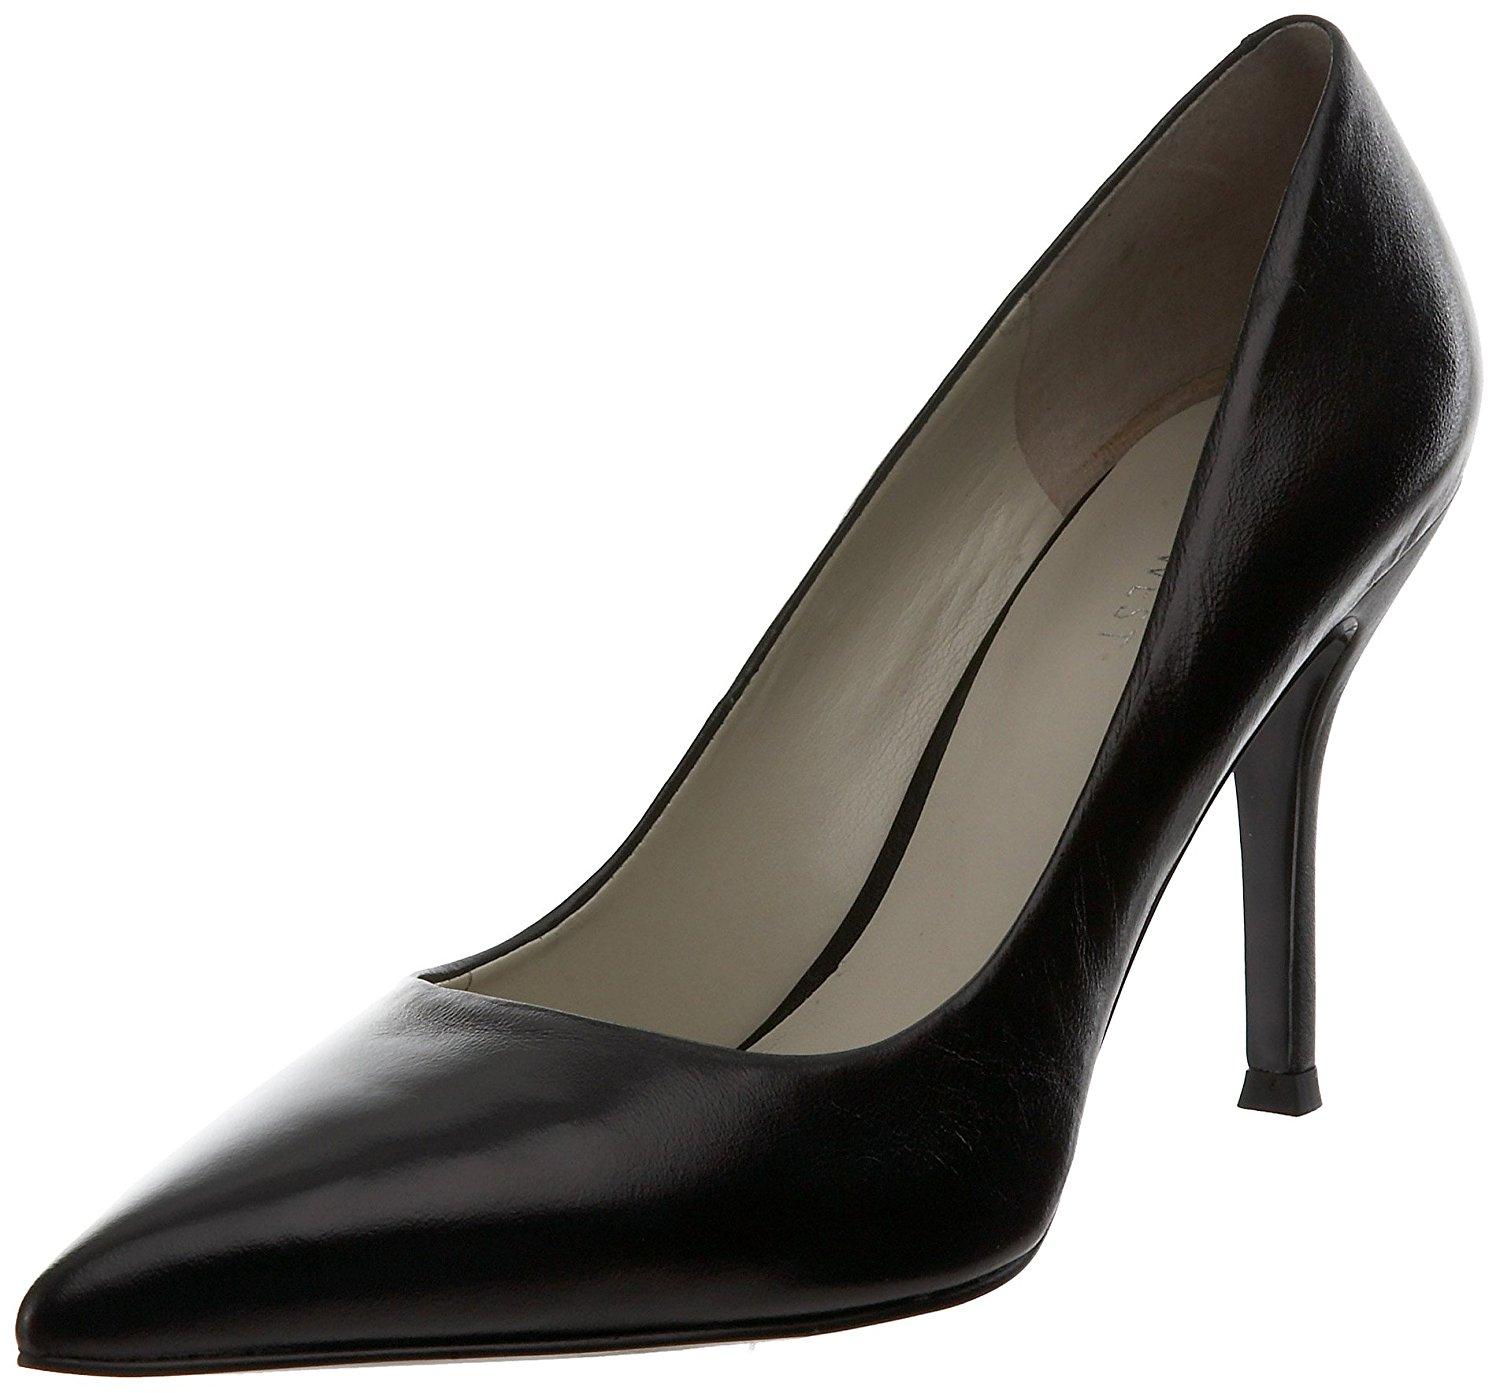 Details about Nine West Womens FLAX Leather Pointed Toe Classic Pumps